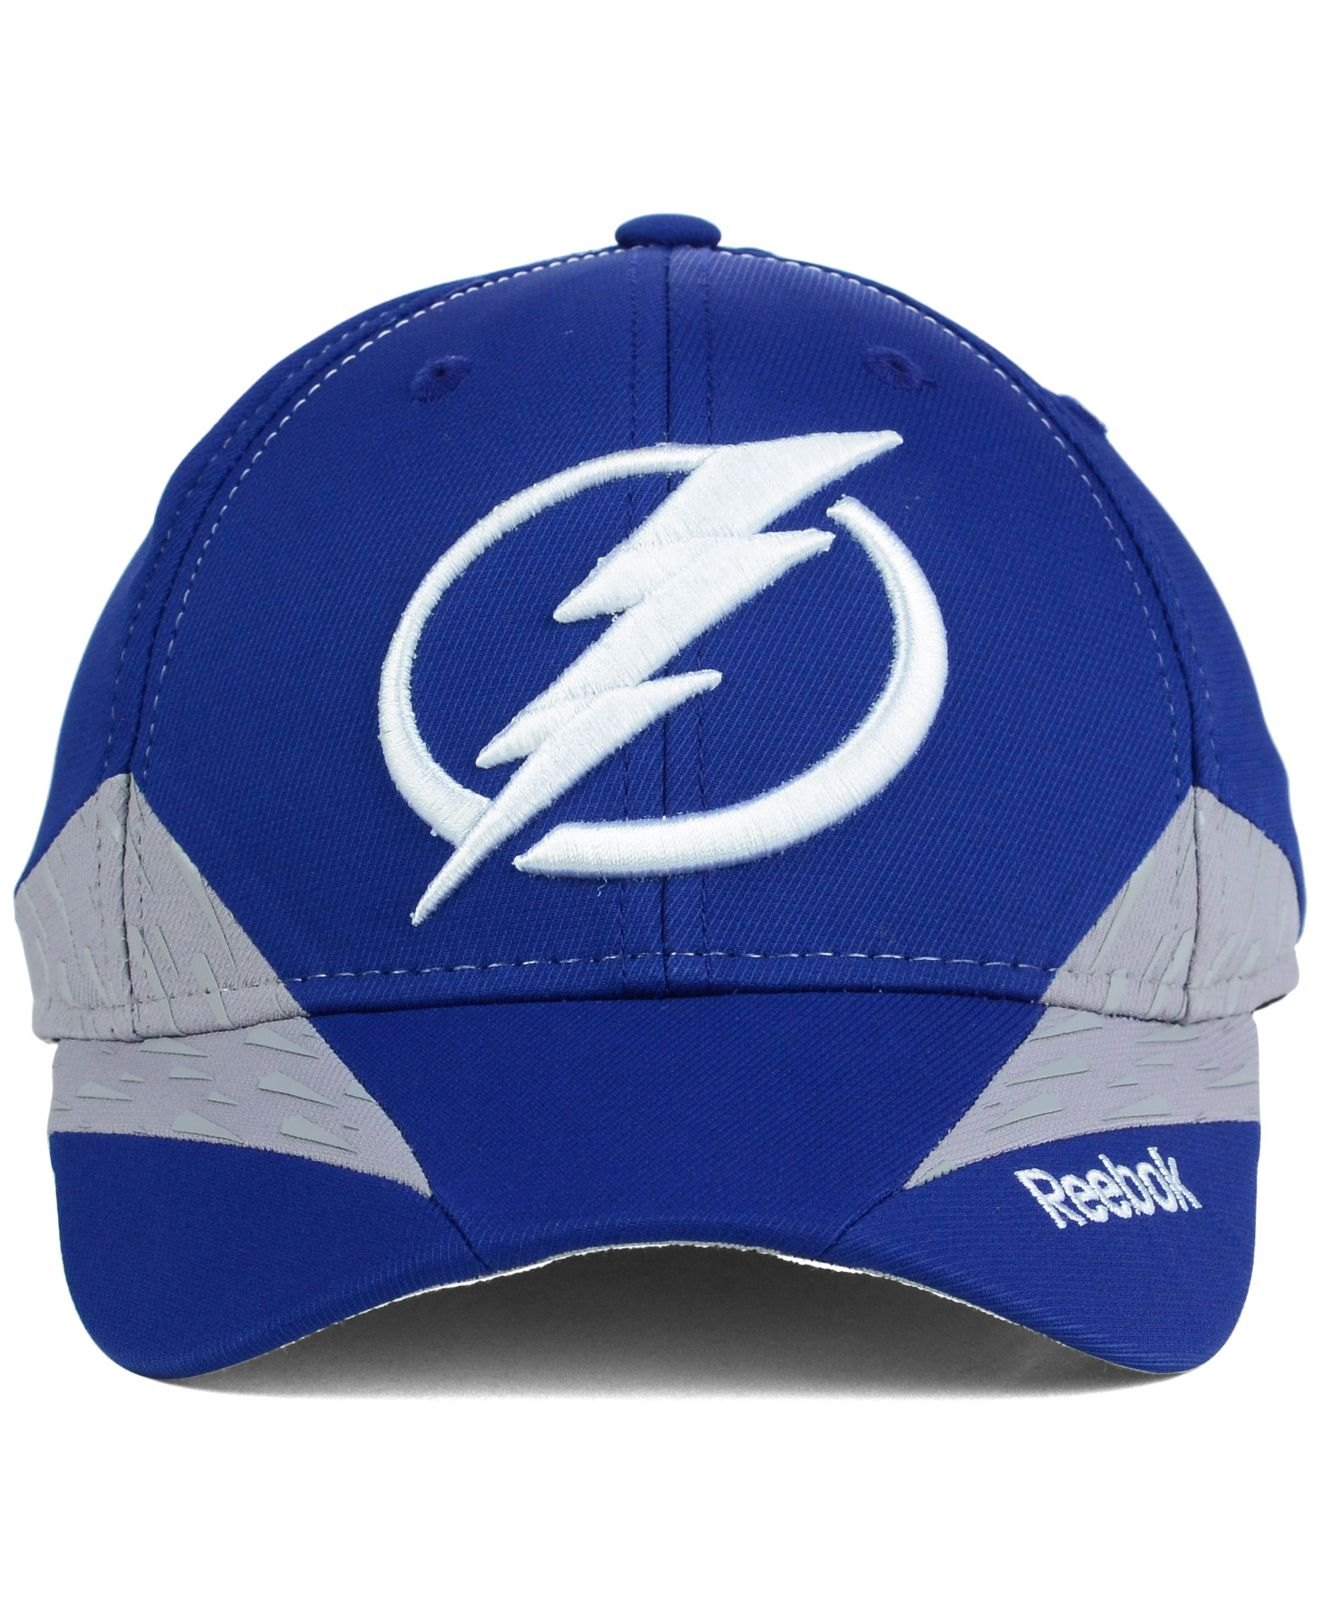 a38d6000aa4 Lyst - Reebok Tampa Bay Lightning Practice Flex Cap in Blue for Men